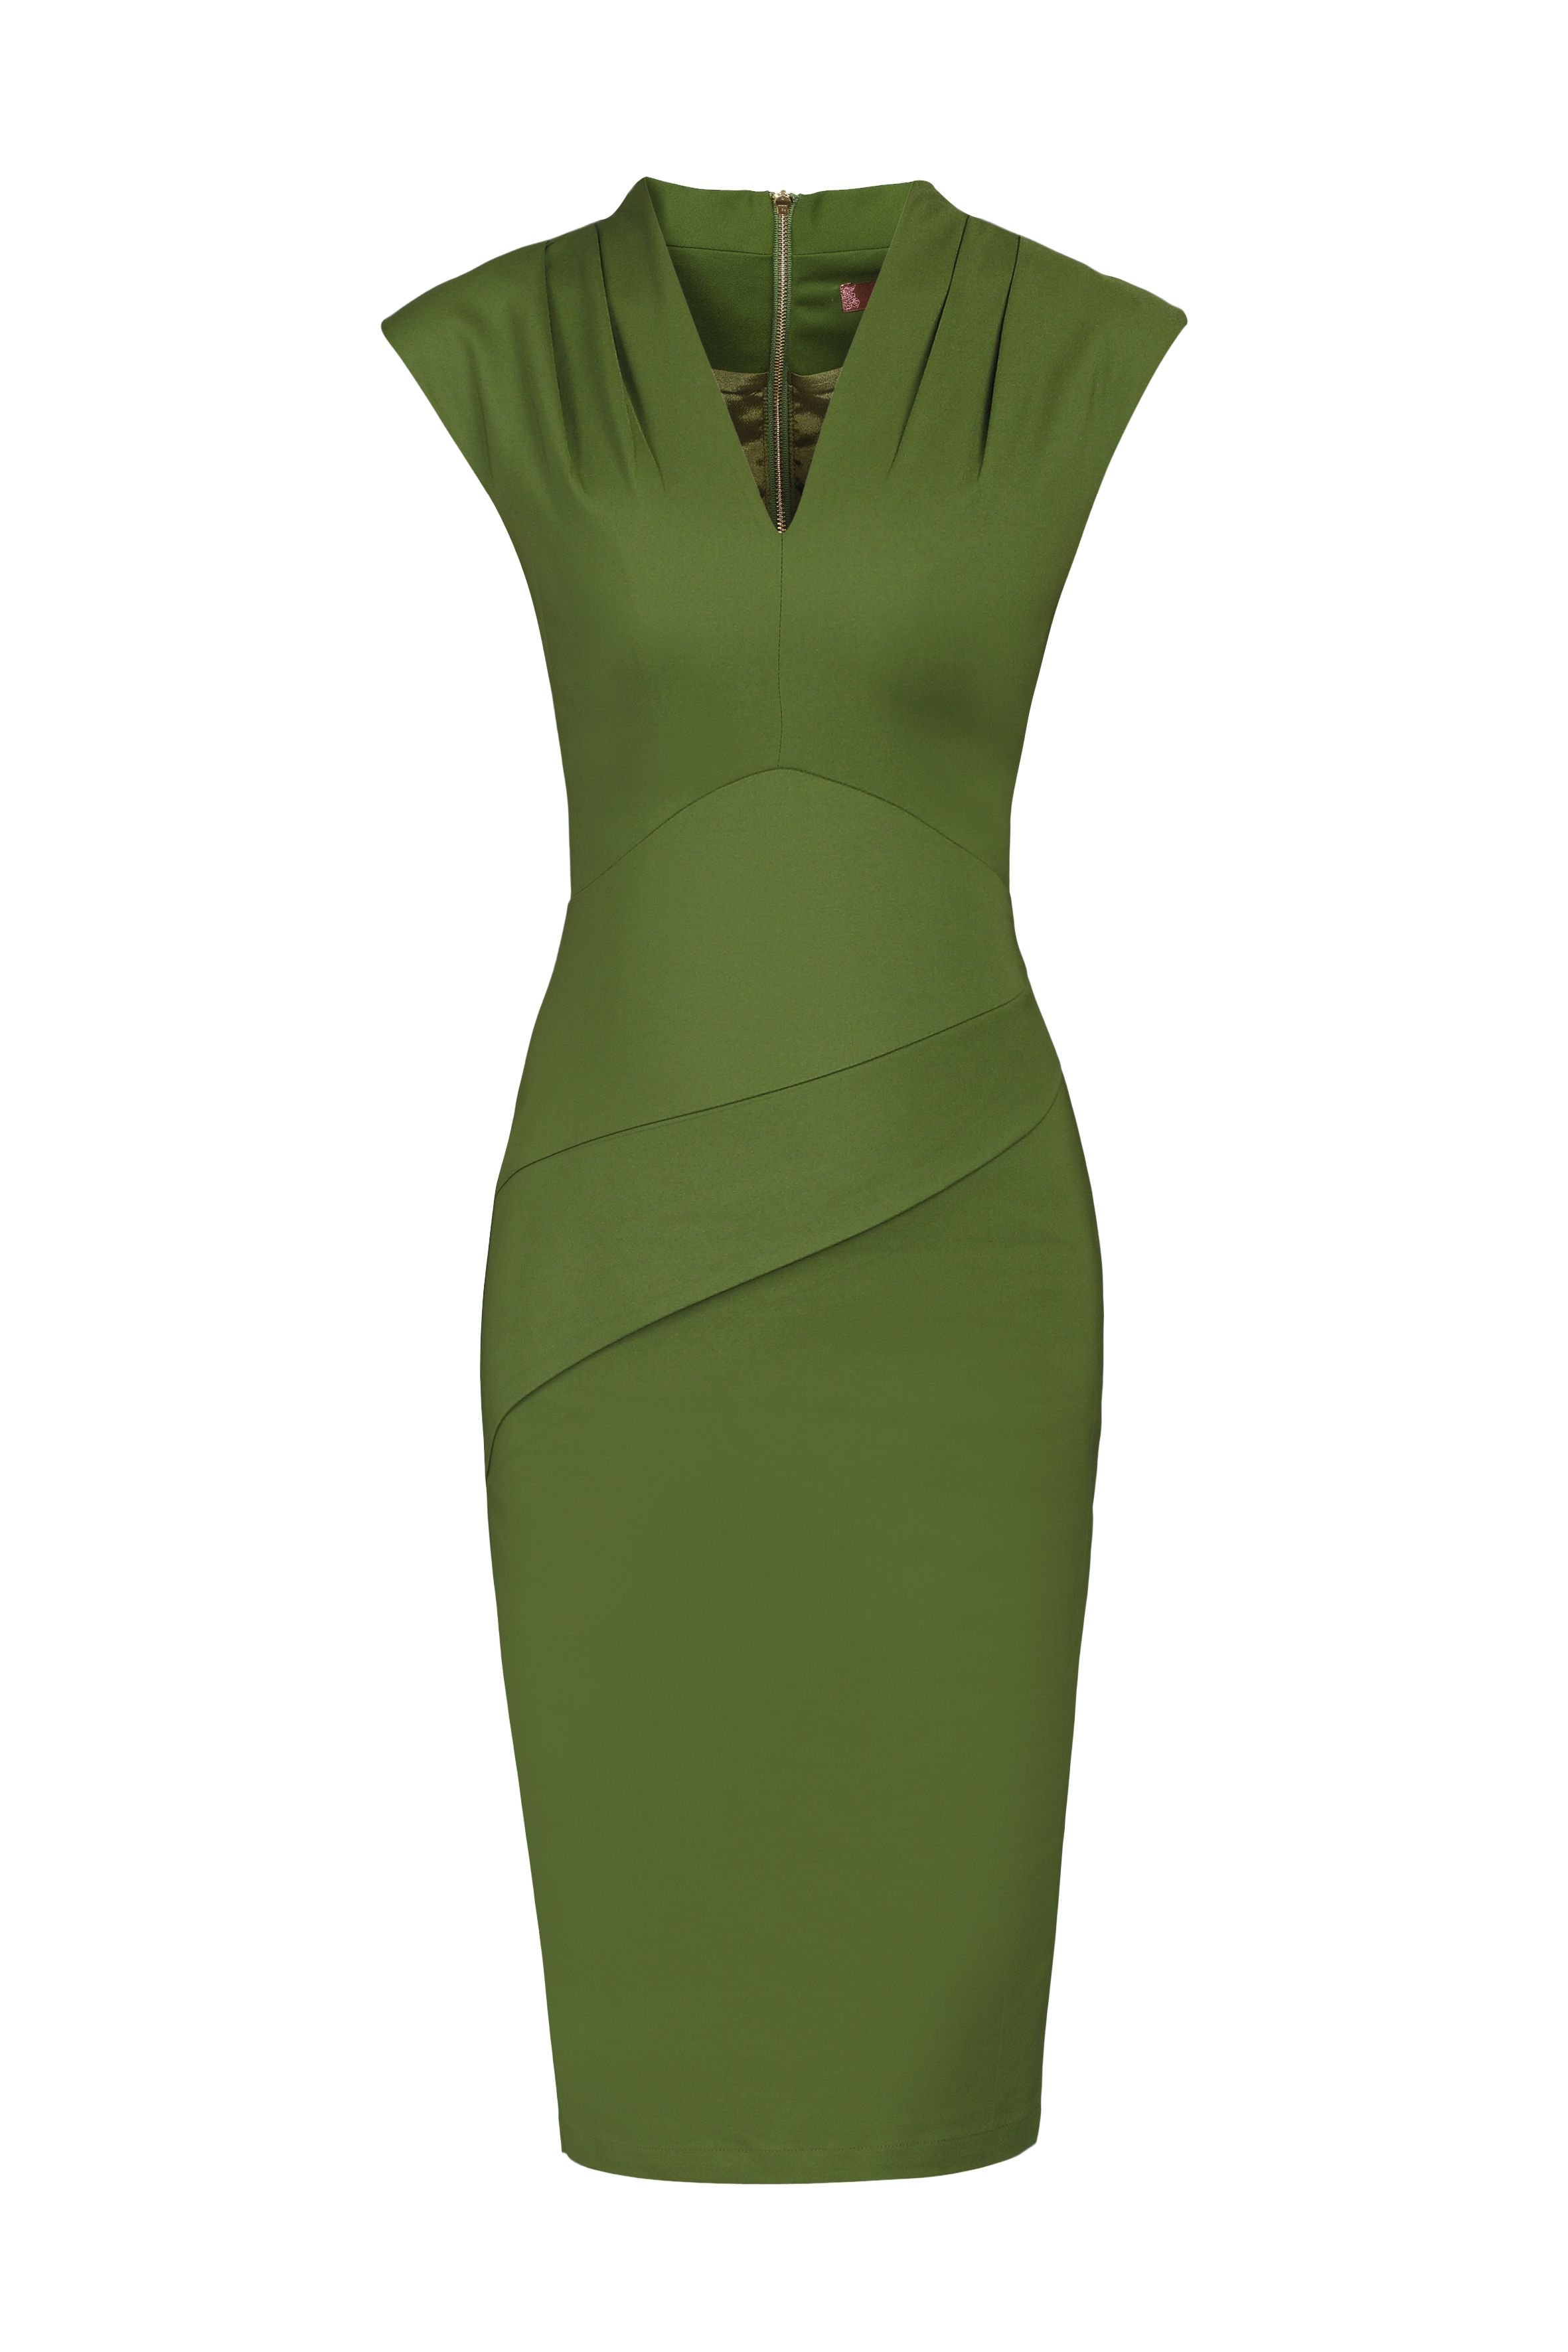 Jolie Moi V Neck Fold Detail Shift Dress, Green